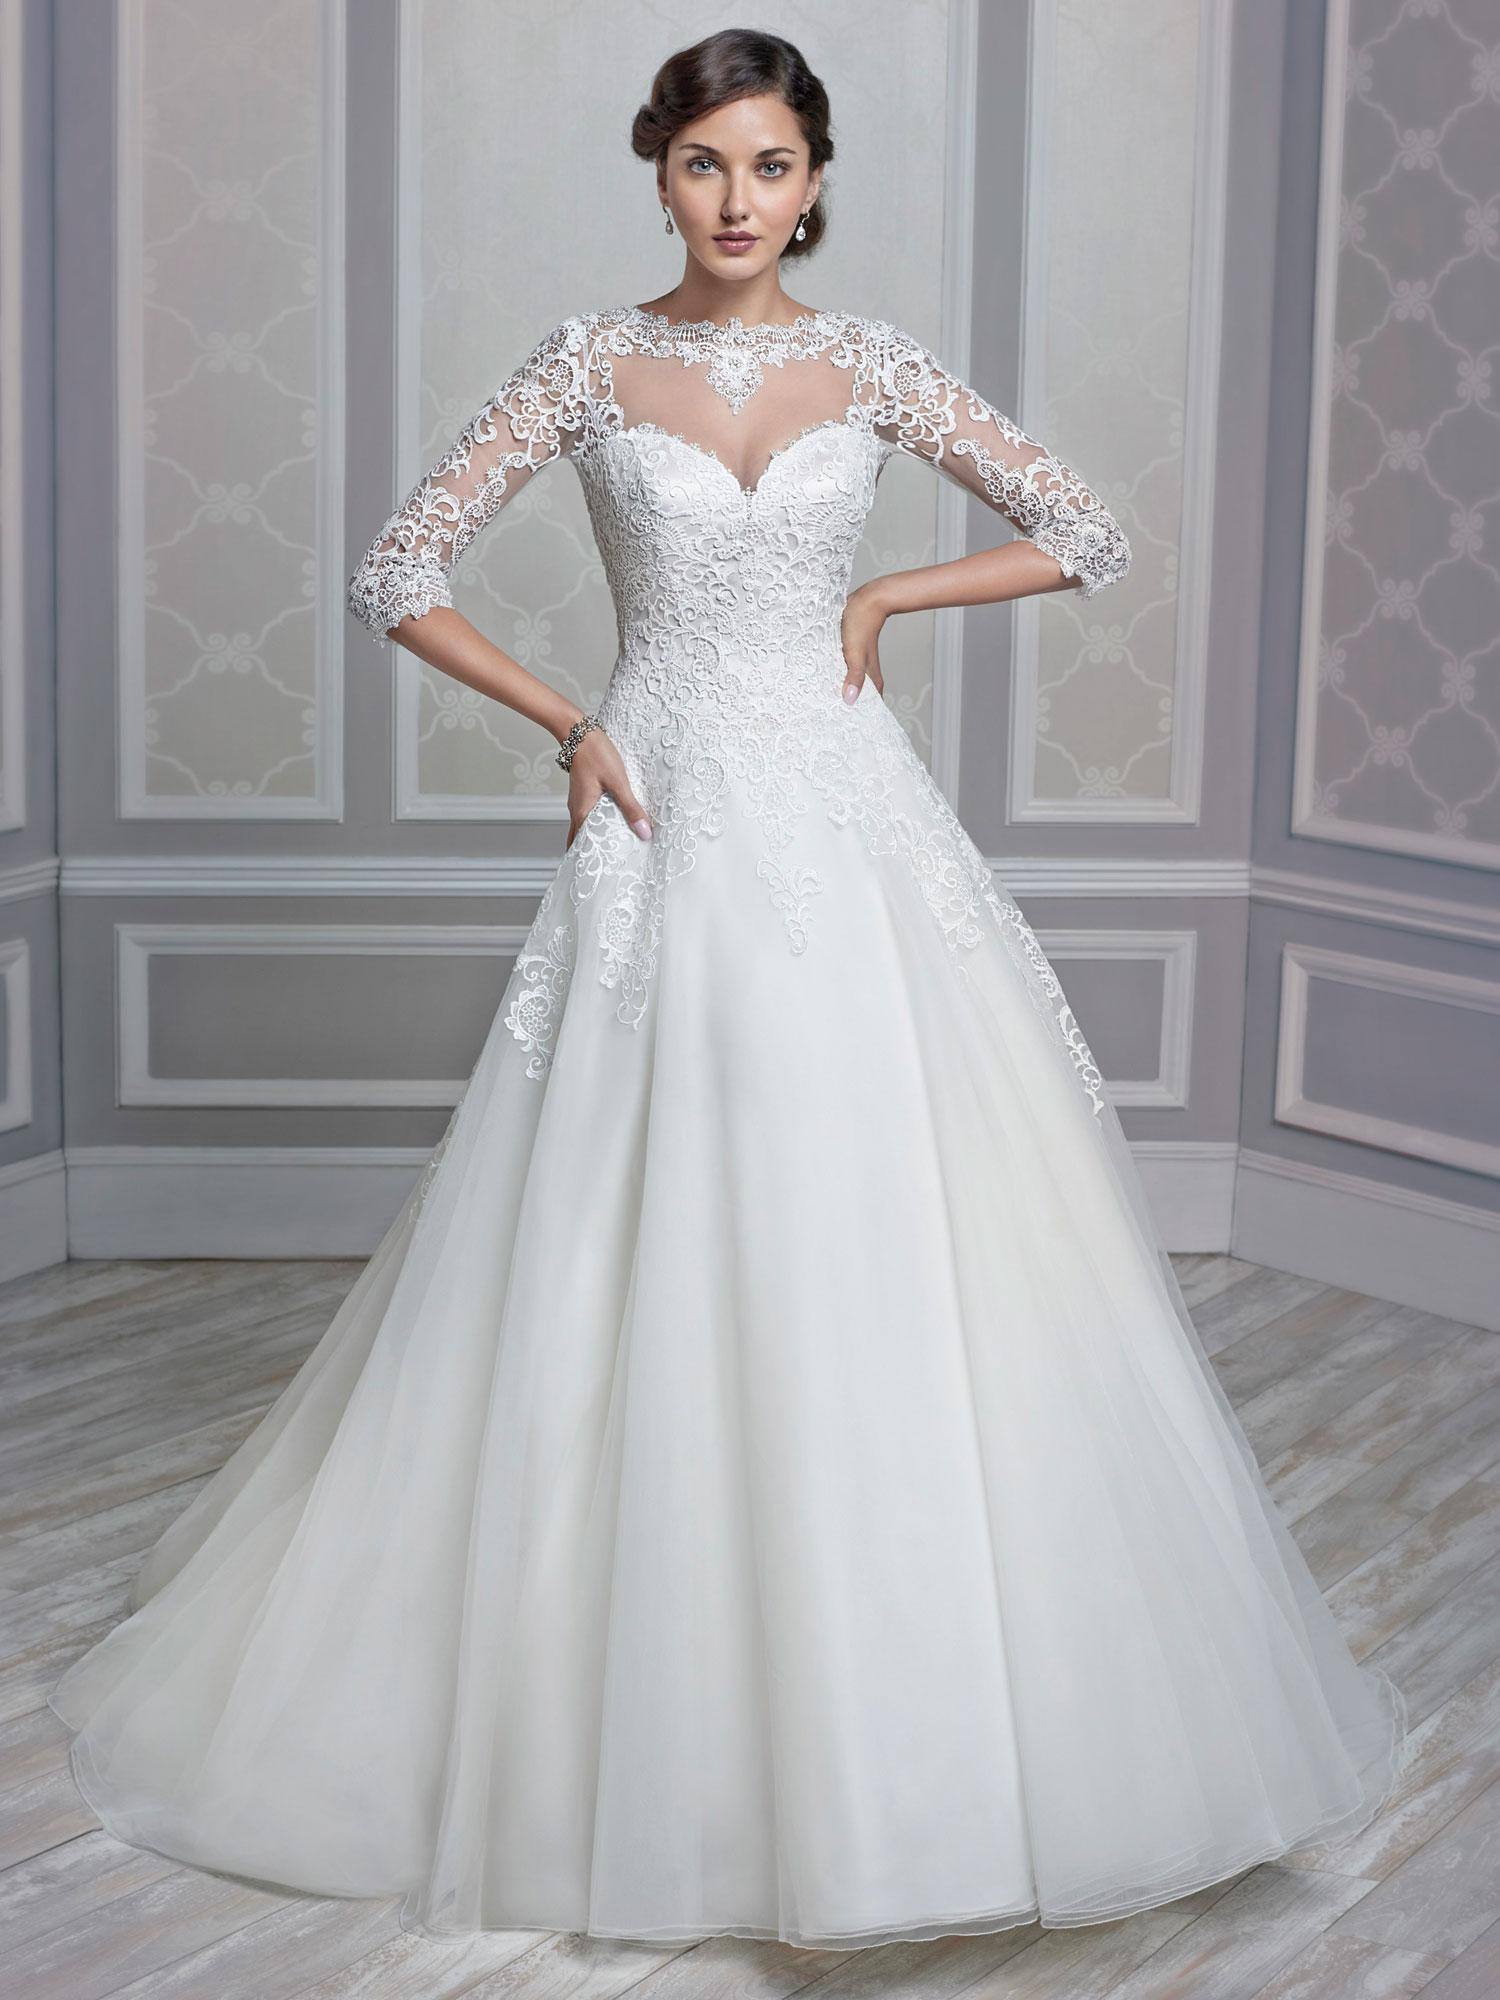 Kenneth winston 2016 muslim wedding dresses sheer high for Kenneth winston wedding dresses